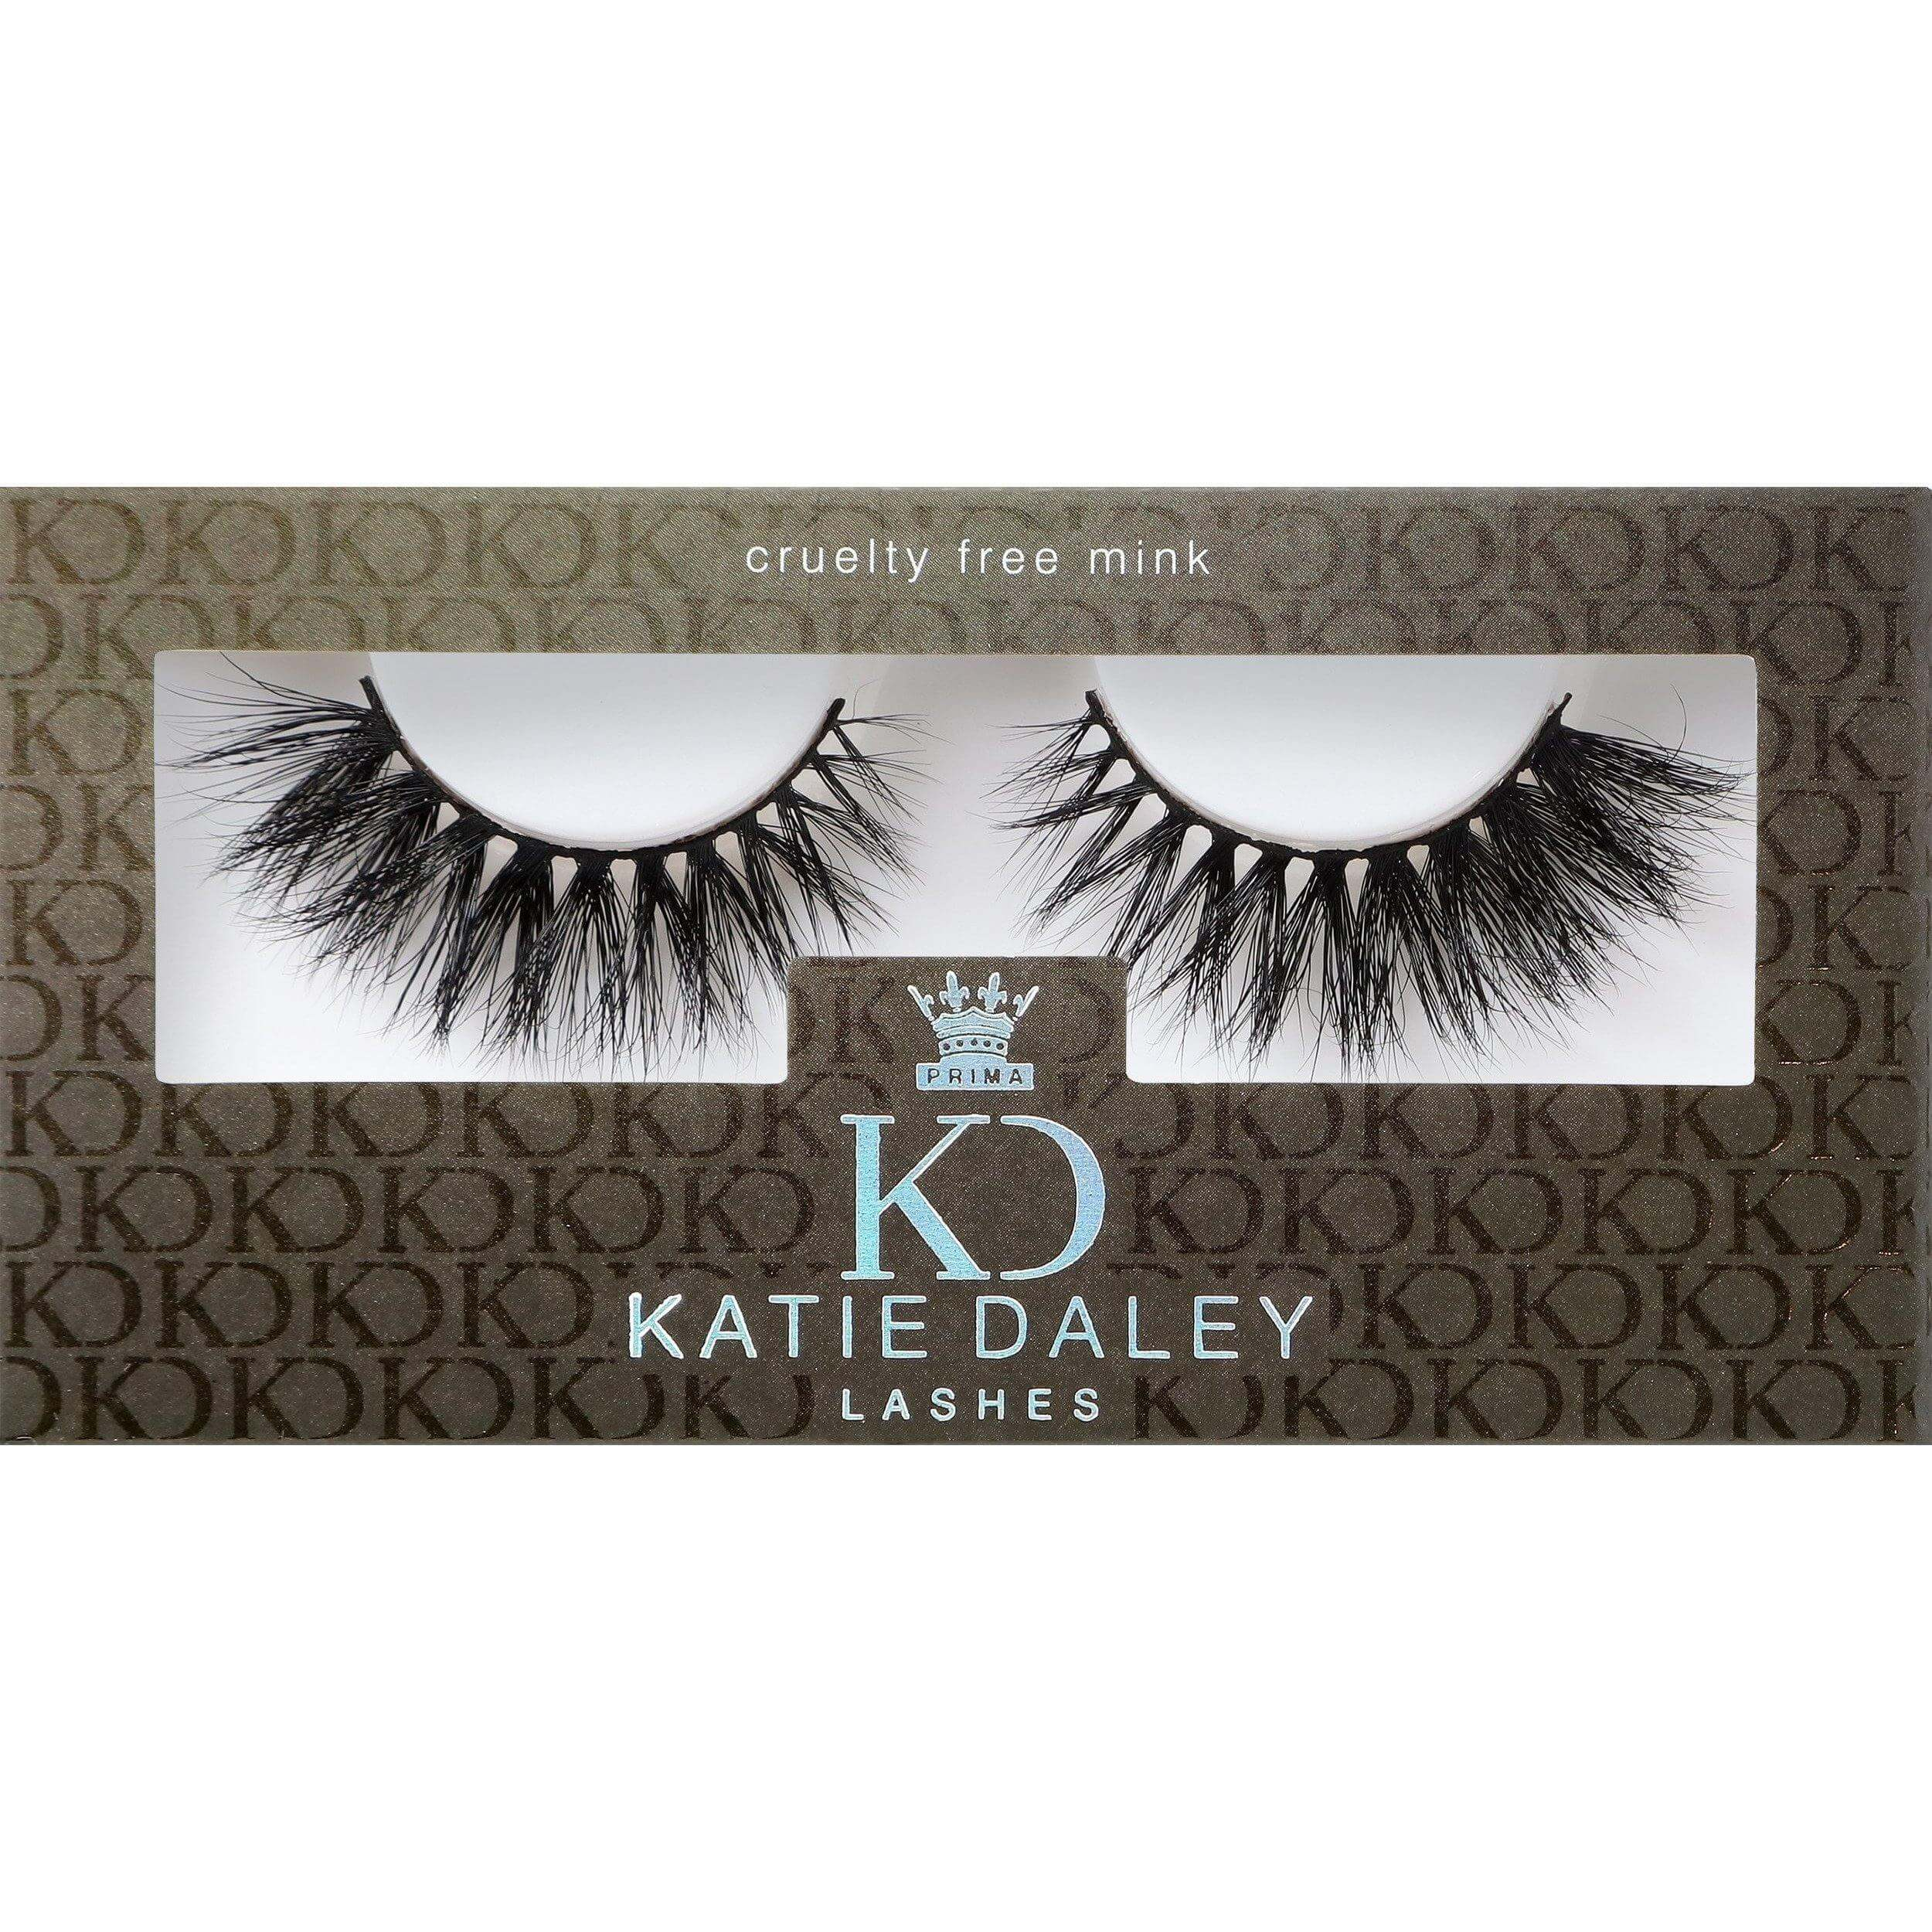 Prima Lash X Katie Daley - The Model - BeautyGold